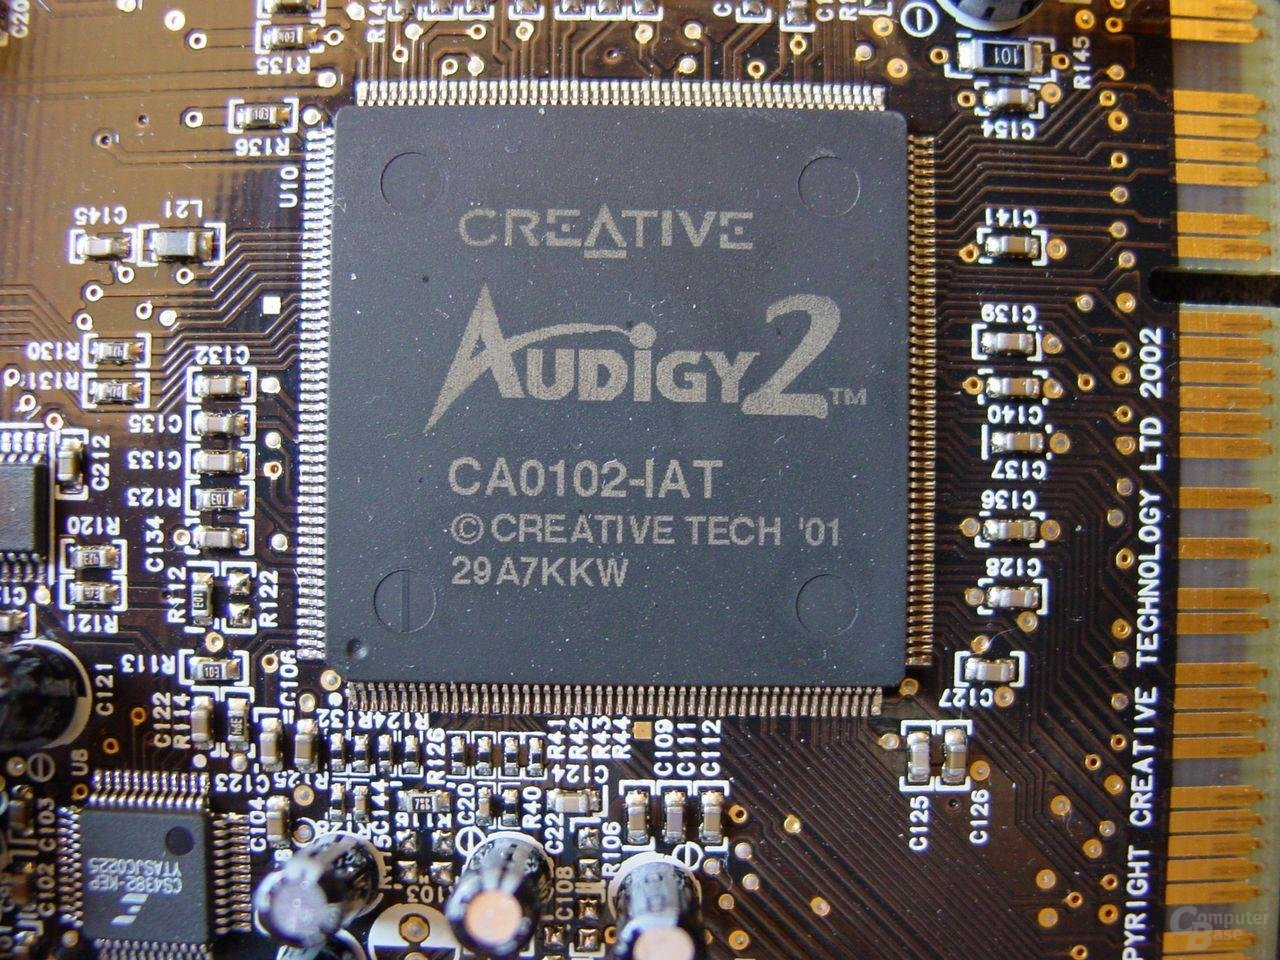 Creative Audigy 2 Chip